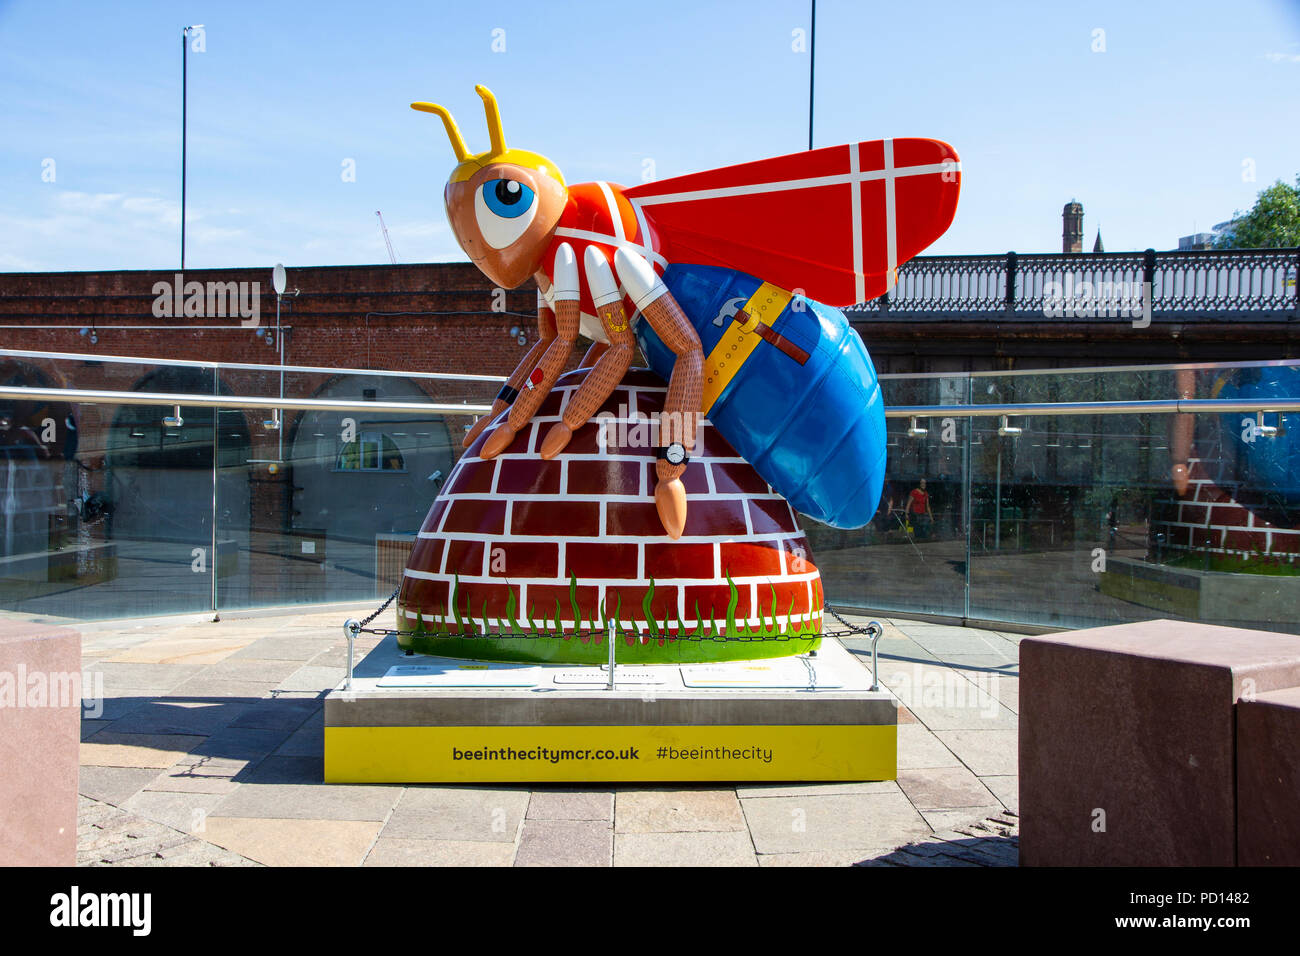 Workee - Nicki McCubbing. Bee in the City, public art event in the City of Manchester. Over 100 bees on a free family fun trail. - Stock Image